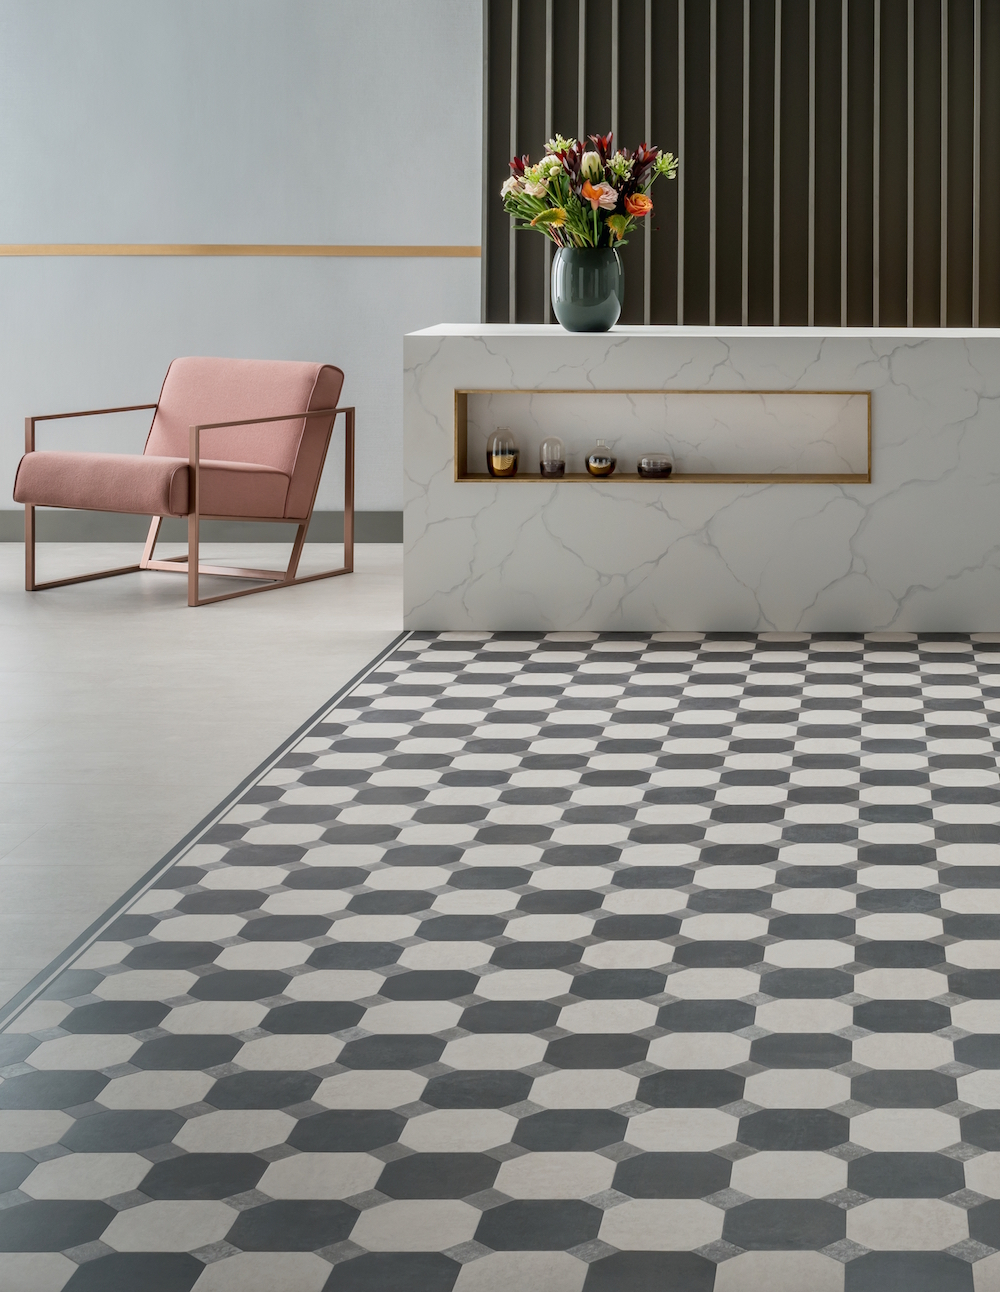 checkered flooring in public area